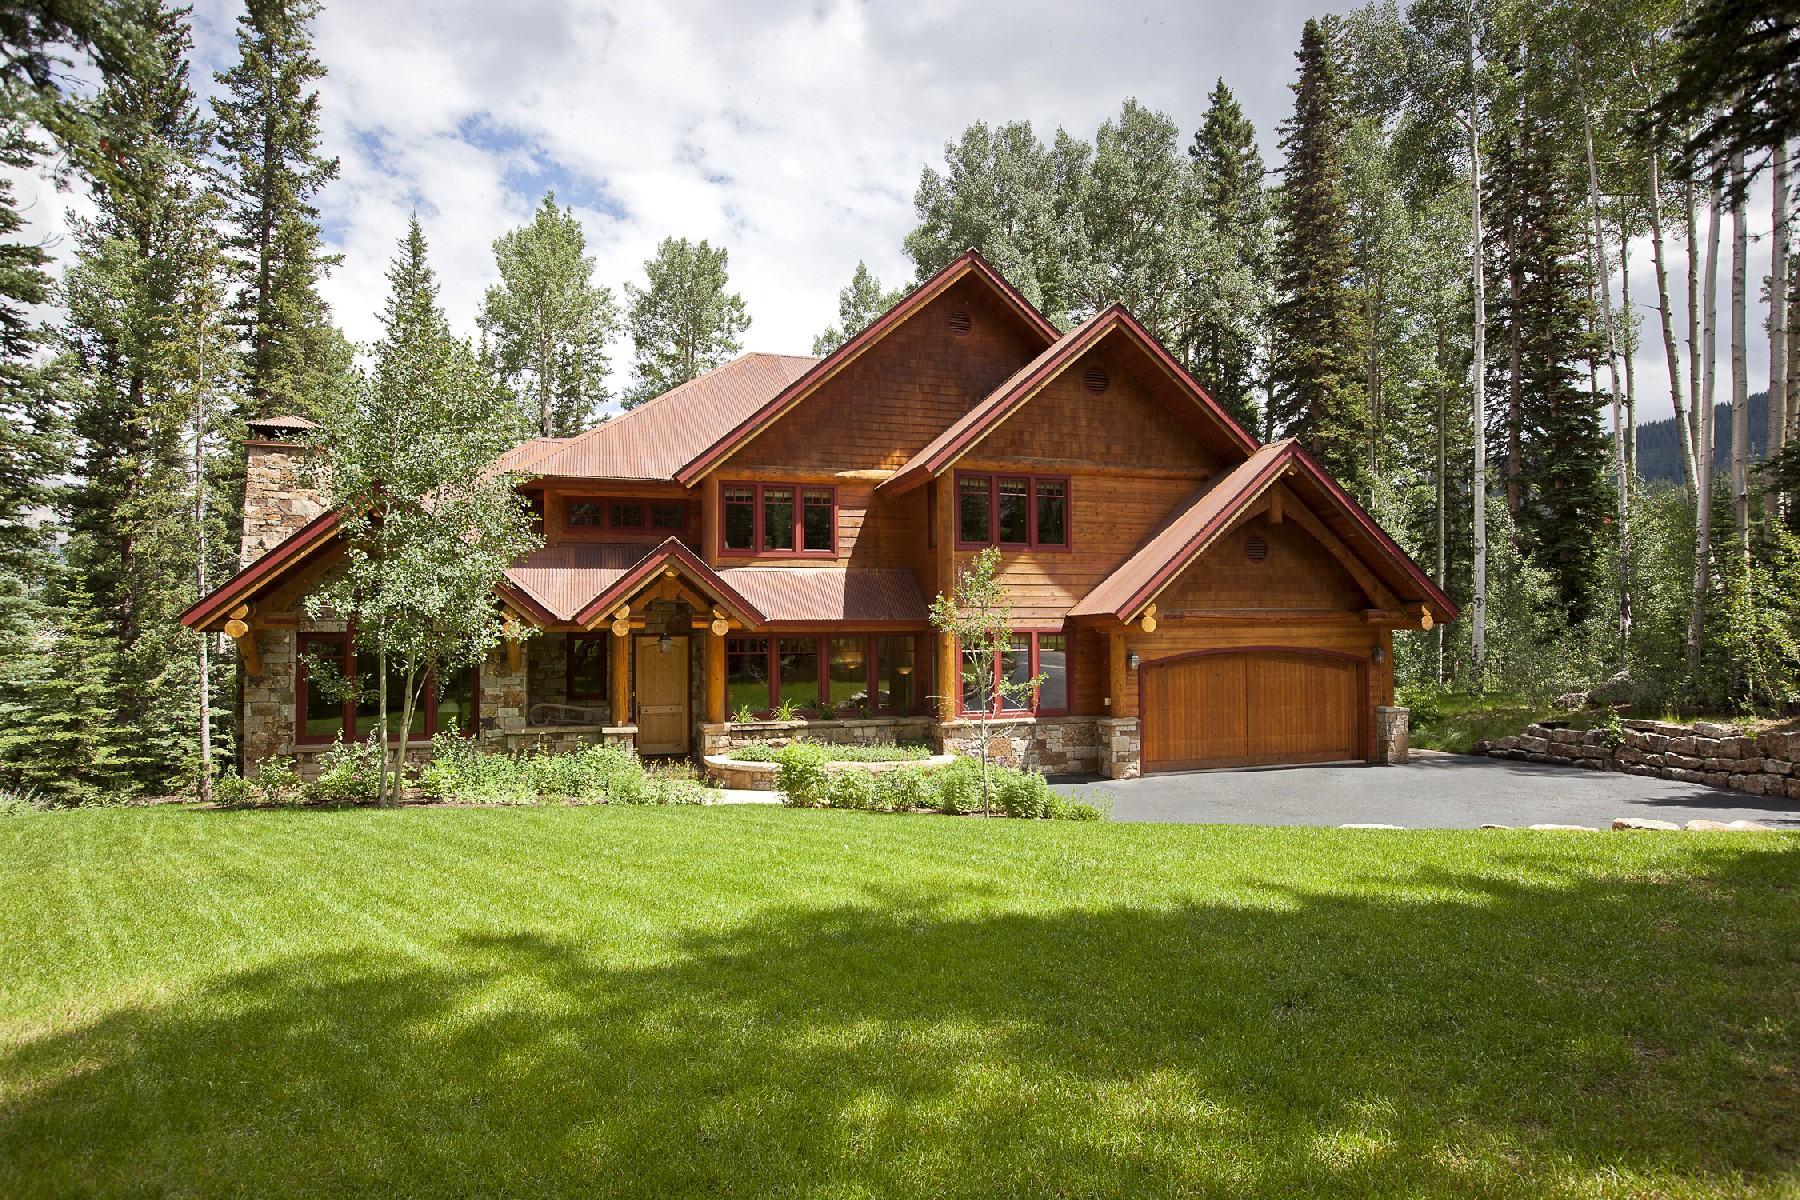 Maison unifamiliale pour l Vente à 120 High Country Road 120 High Country Road Mountain Village Mountain Village, Telluride, Colorado, 81435 États-Unis